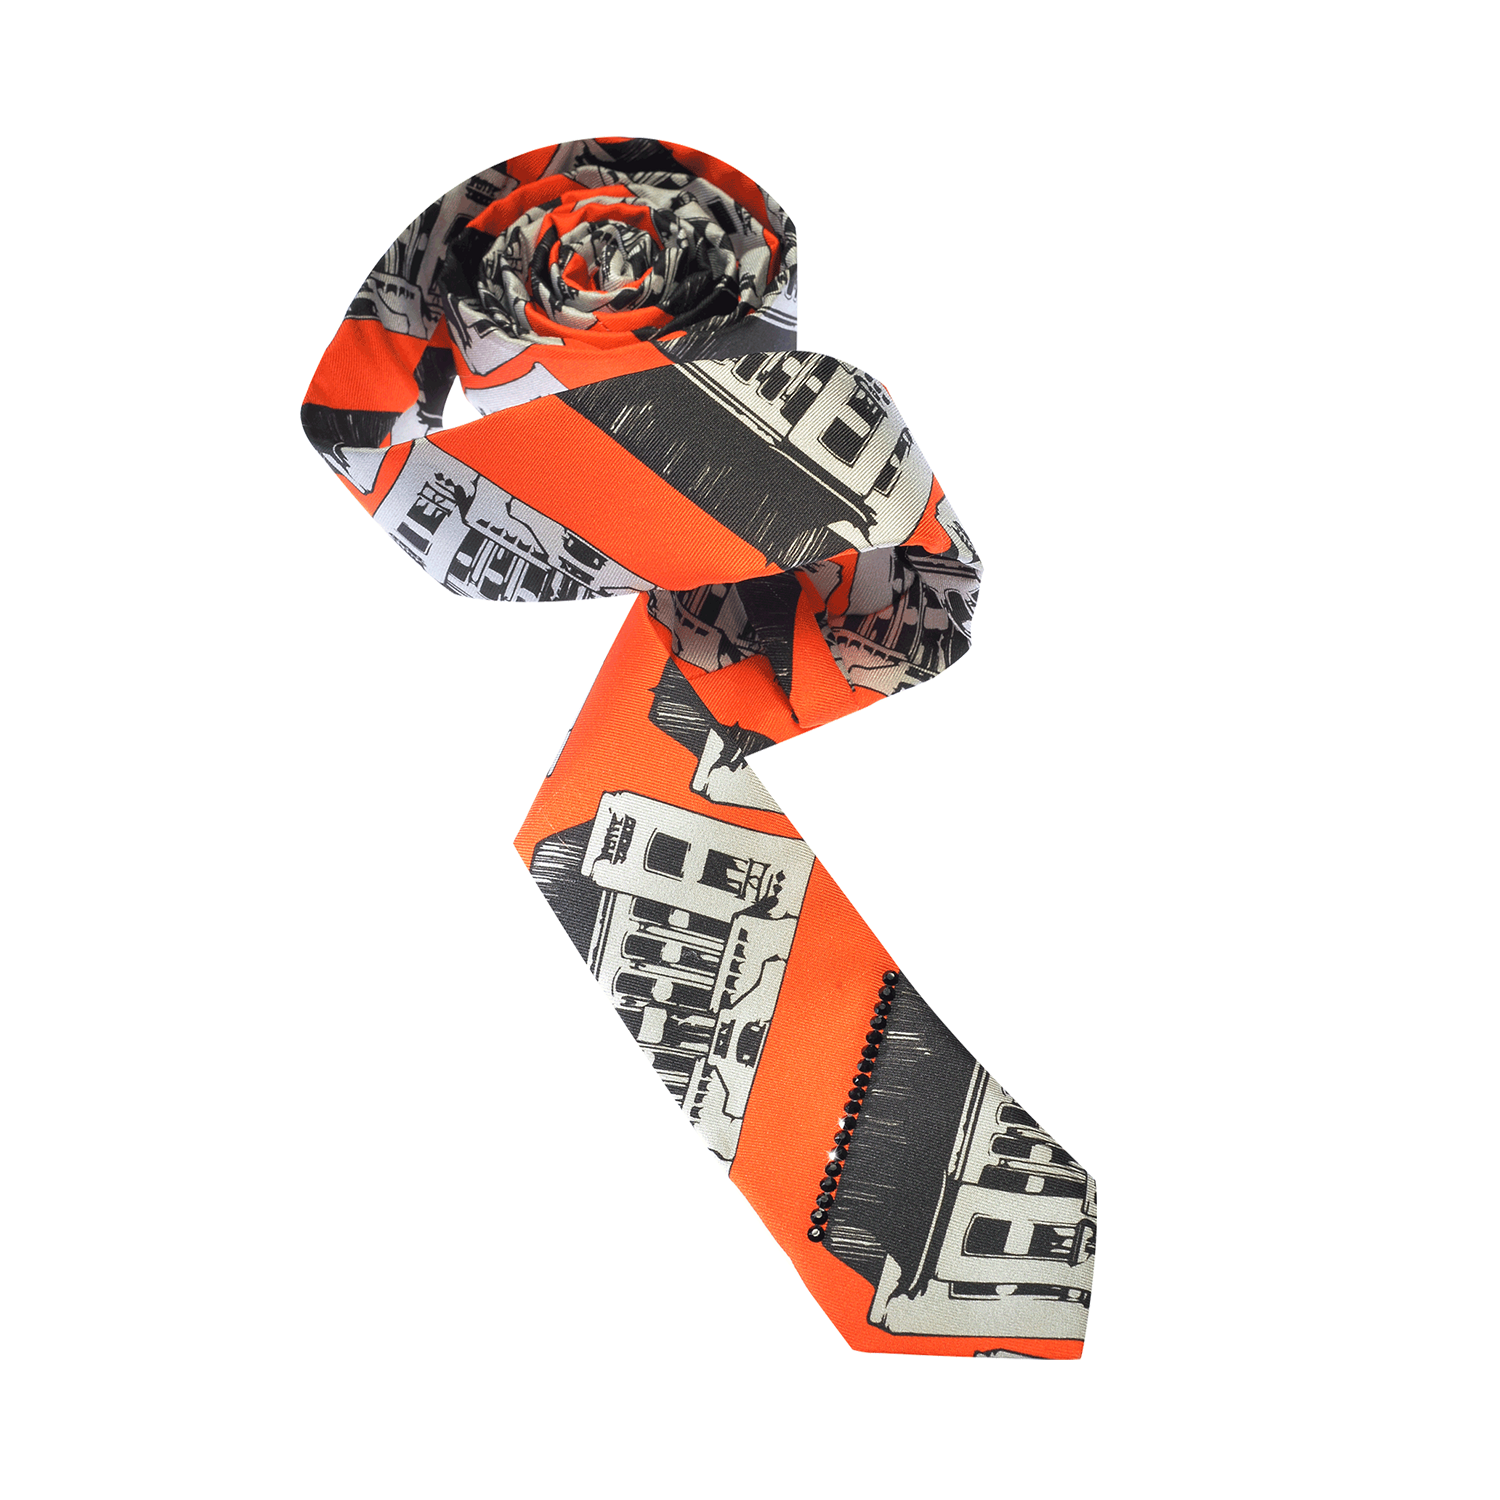 【MANSION】100% Silk Funky Chic Graphic Printed Tie with Swarovski® Crystals